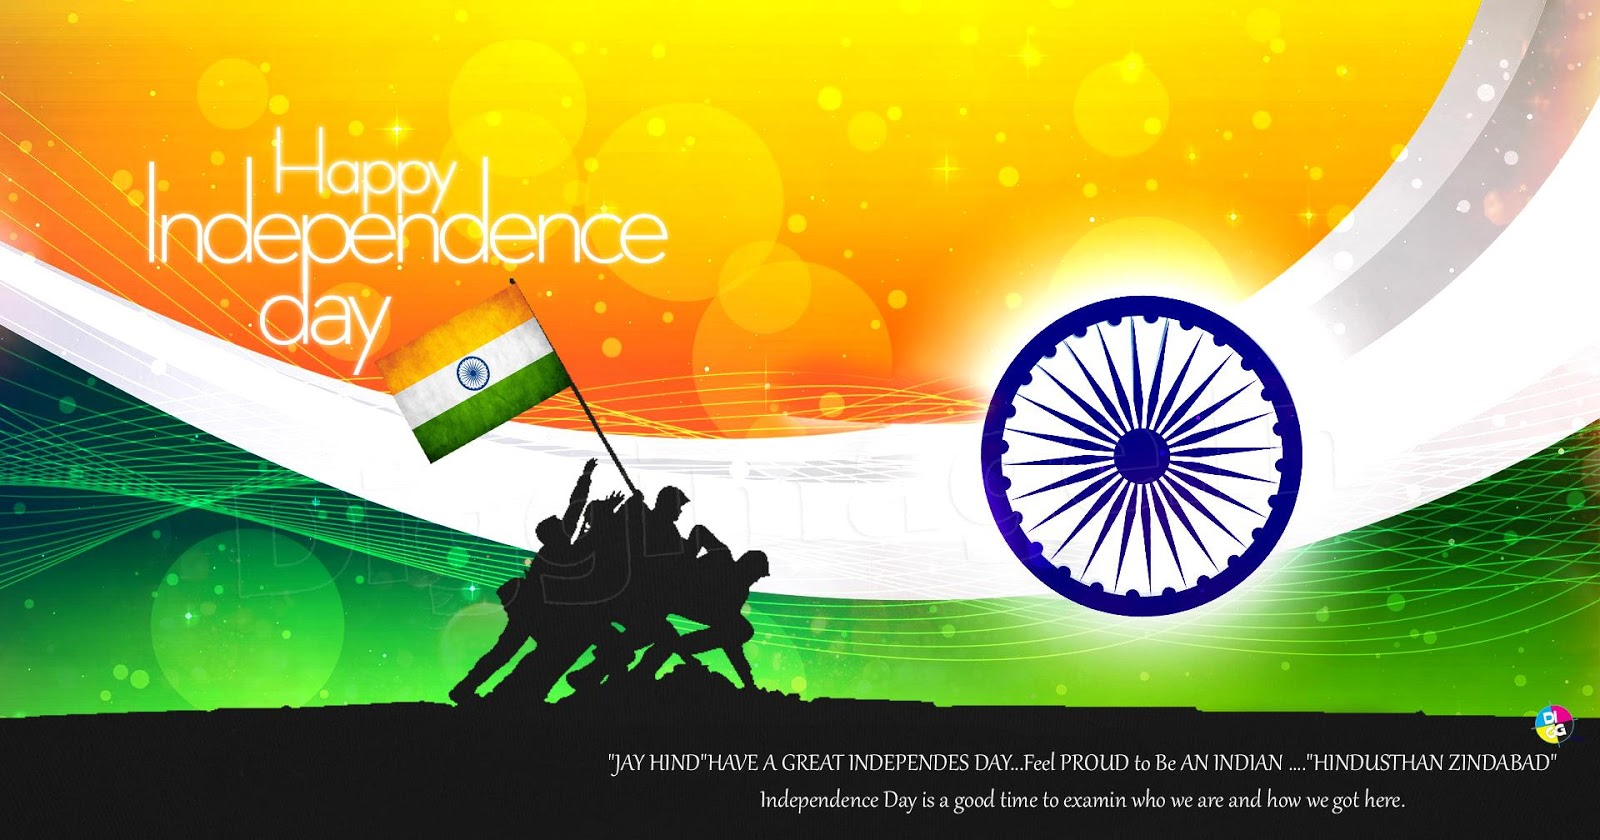 Happy Independence Day Images Photos Wallpapers 2015